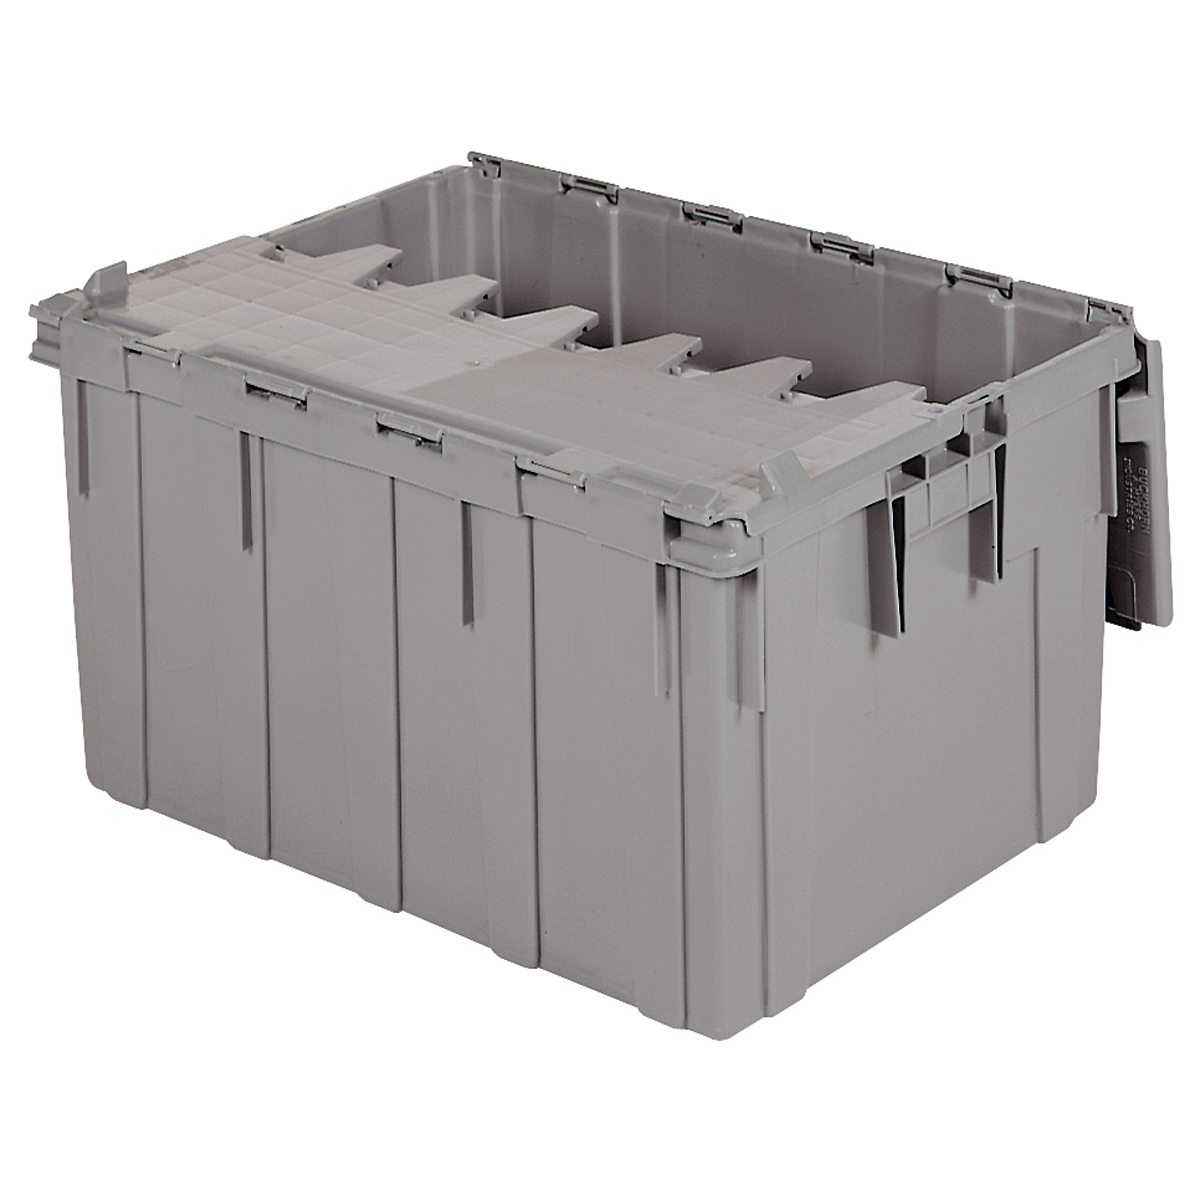 Attached Lid Container 28 gal, 28 x 21 x 15-1/2, Gray (39280).  This item sold in carton quantities of 1.